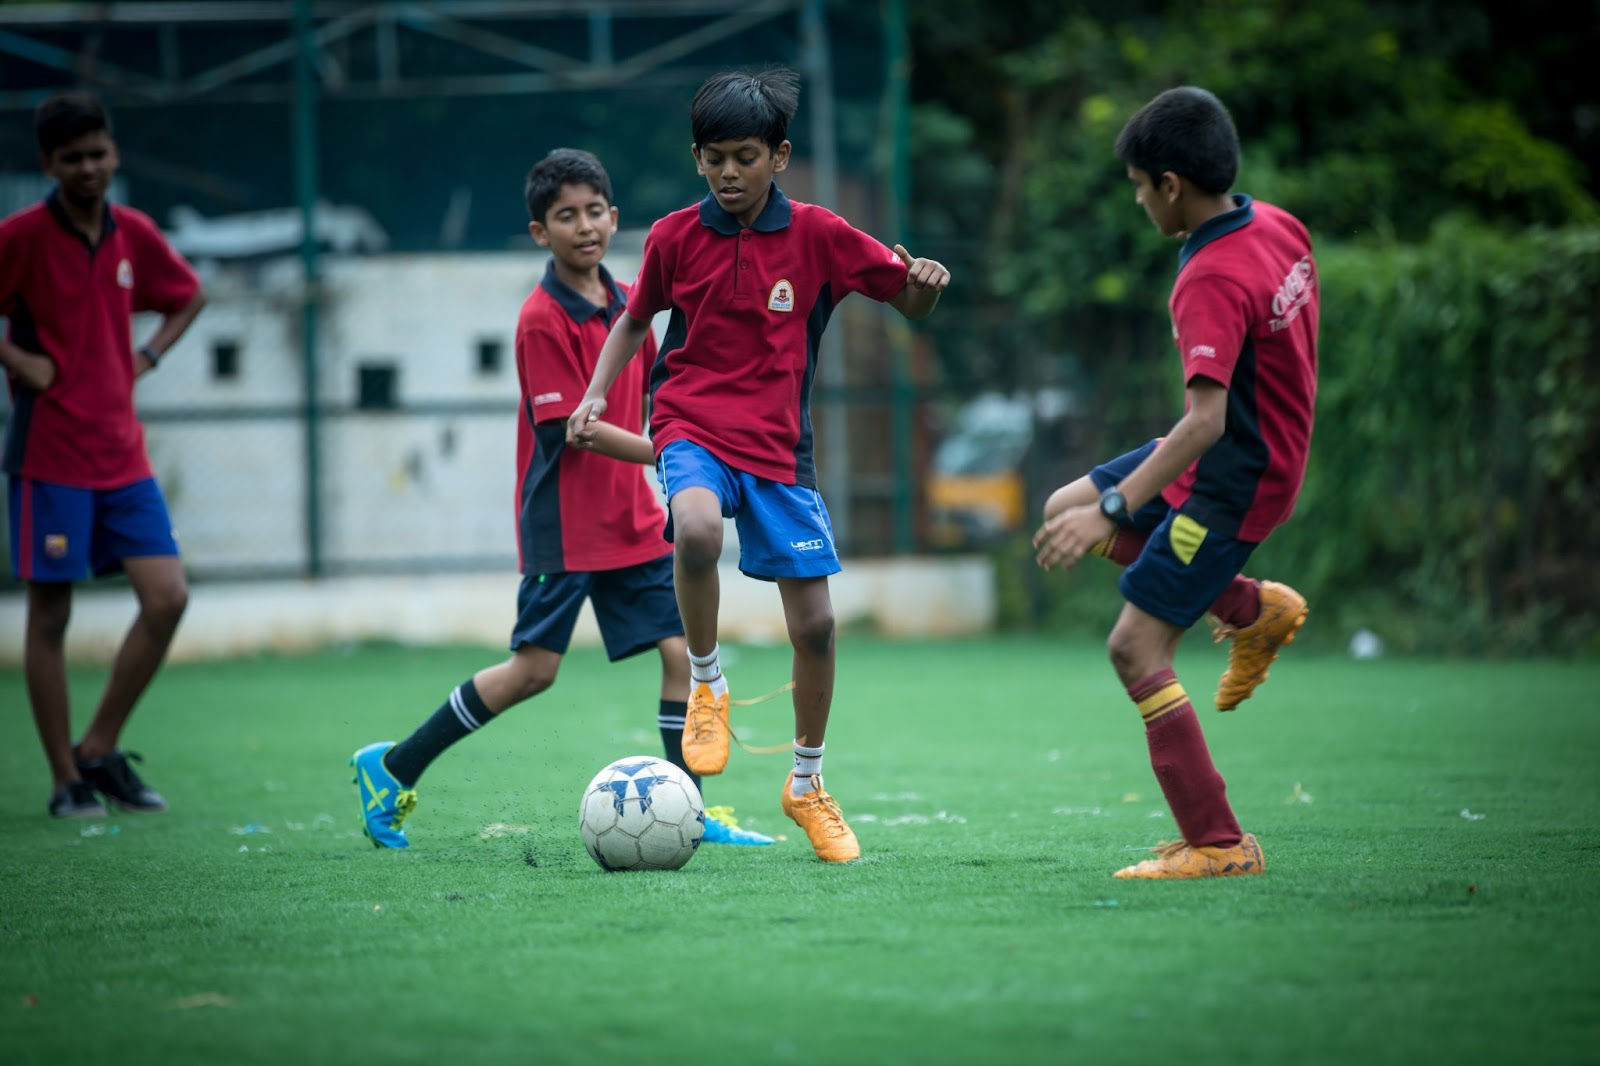 extracurricular activities such as sports help kids learn about teamwork